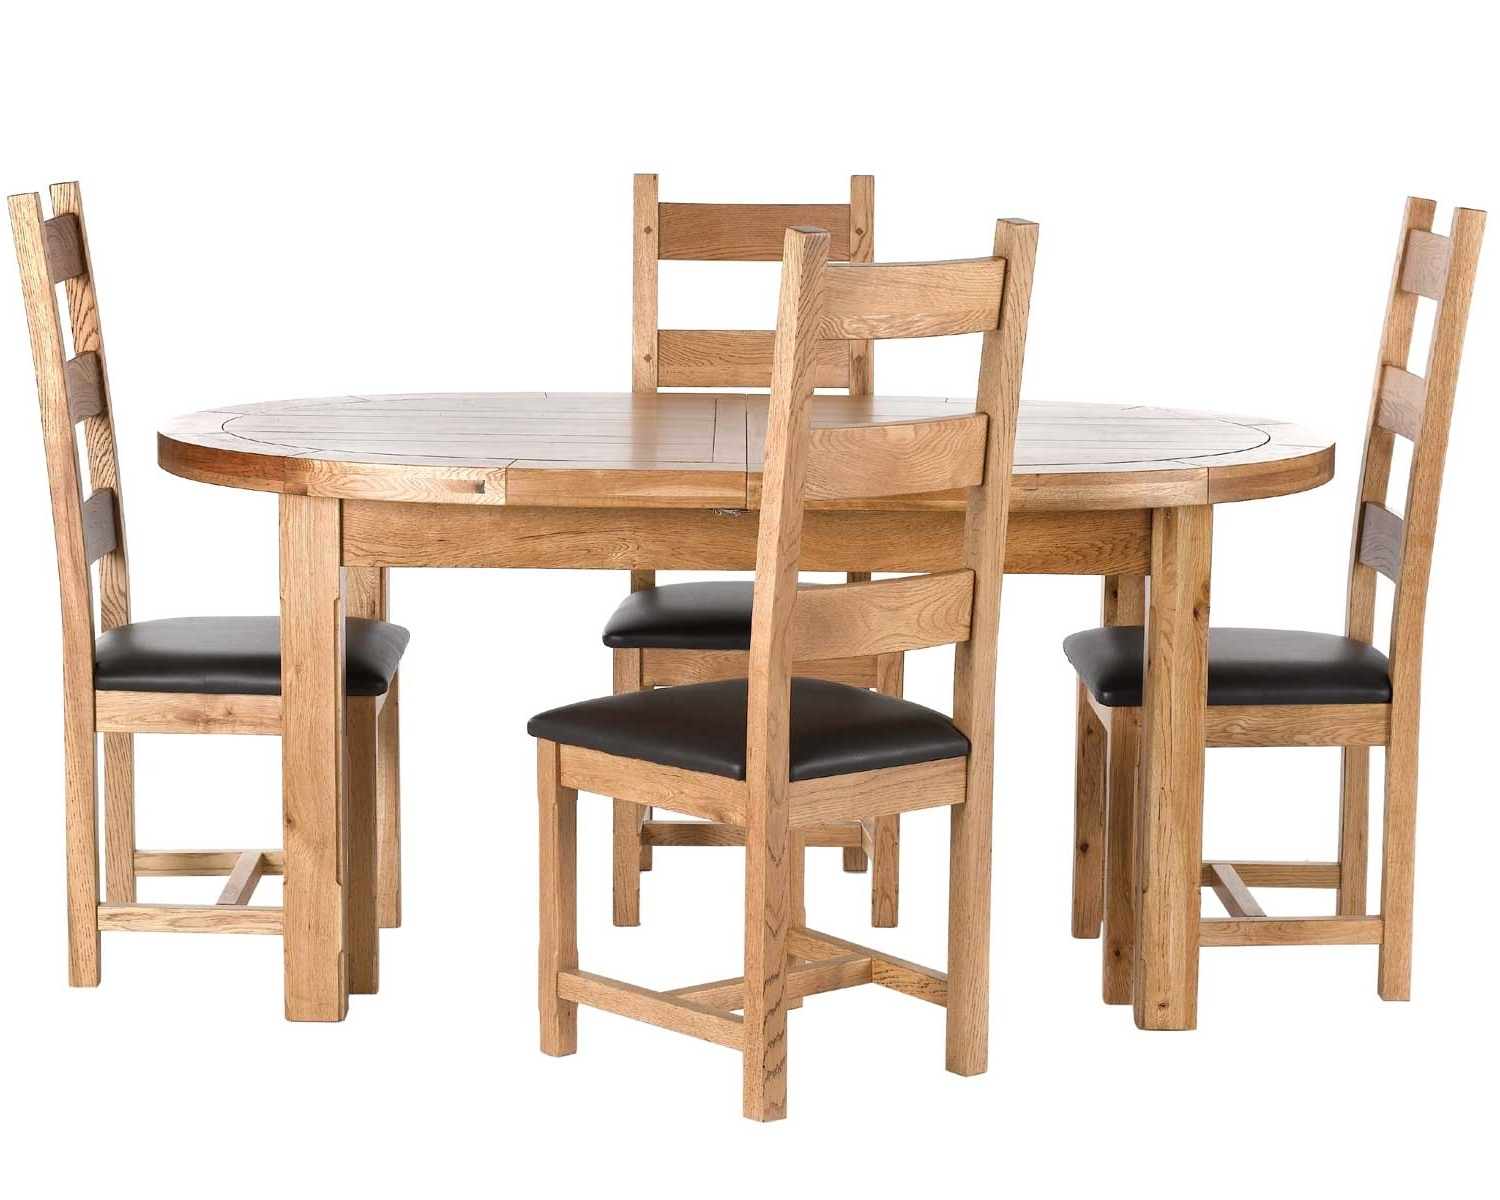 Windermere Solid Oak Oval Extending Dining Table & Chairs, Carlton Inside Well Liked Oval Oak Dining Tables And Chairs (View 24 of 25)